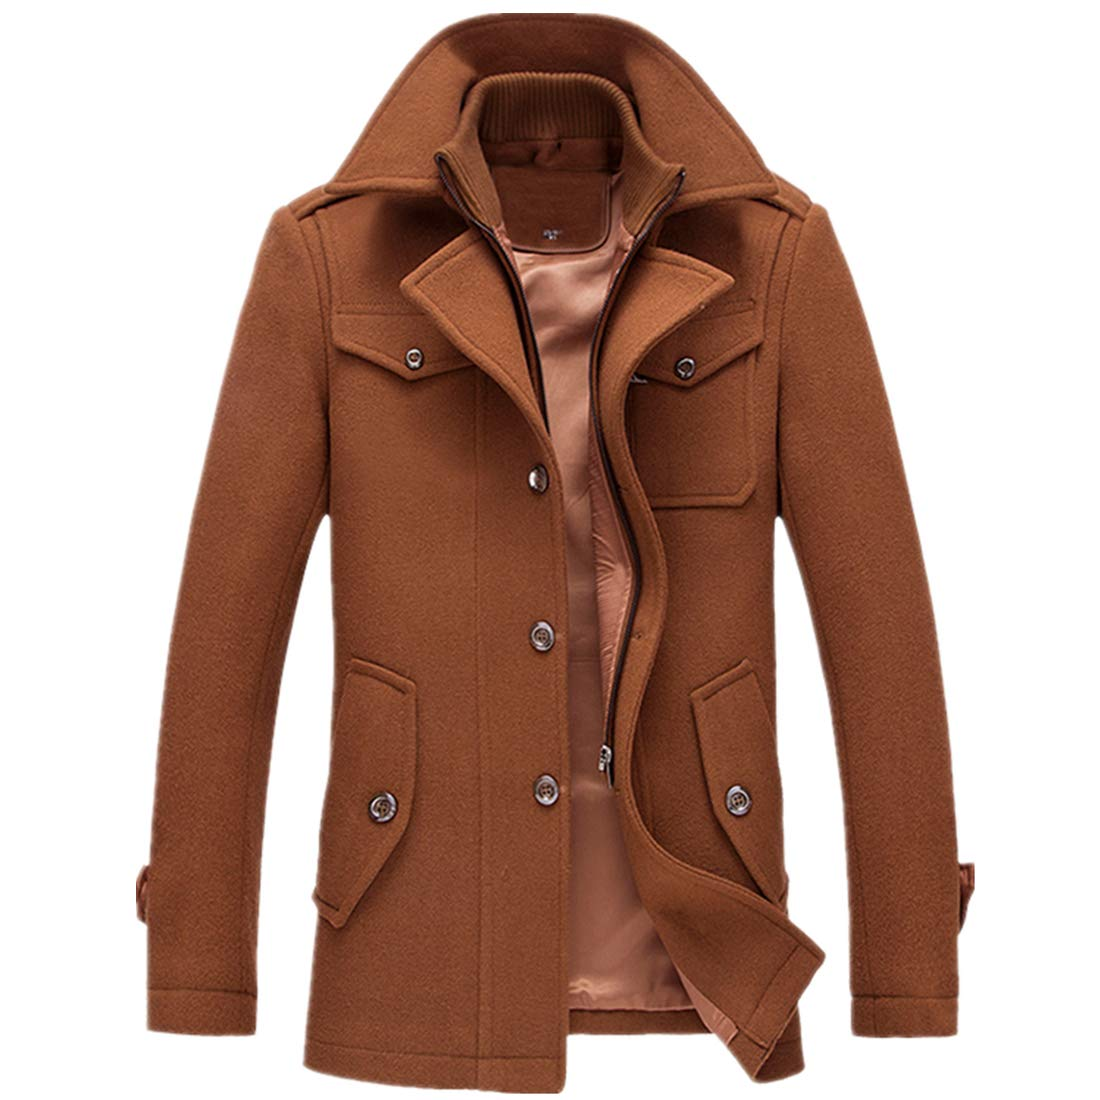 T&D Men's Winter Thicken Warm Stand Collar Wool Coat Single Breasted Pea Coat T&D WELL LTD.